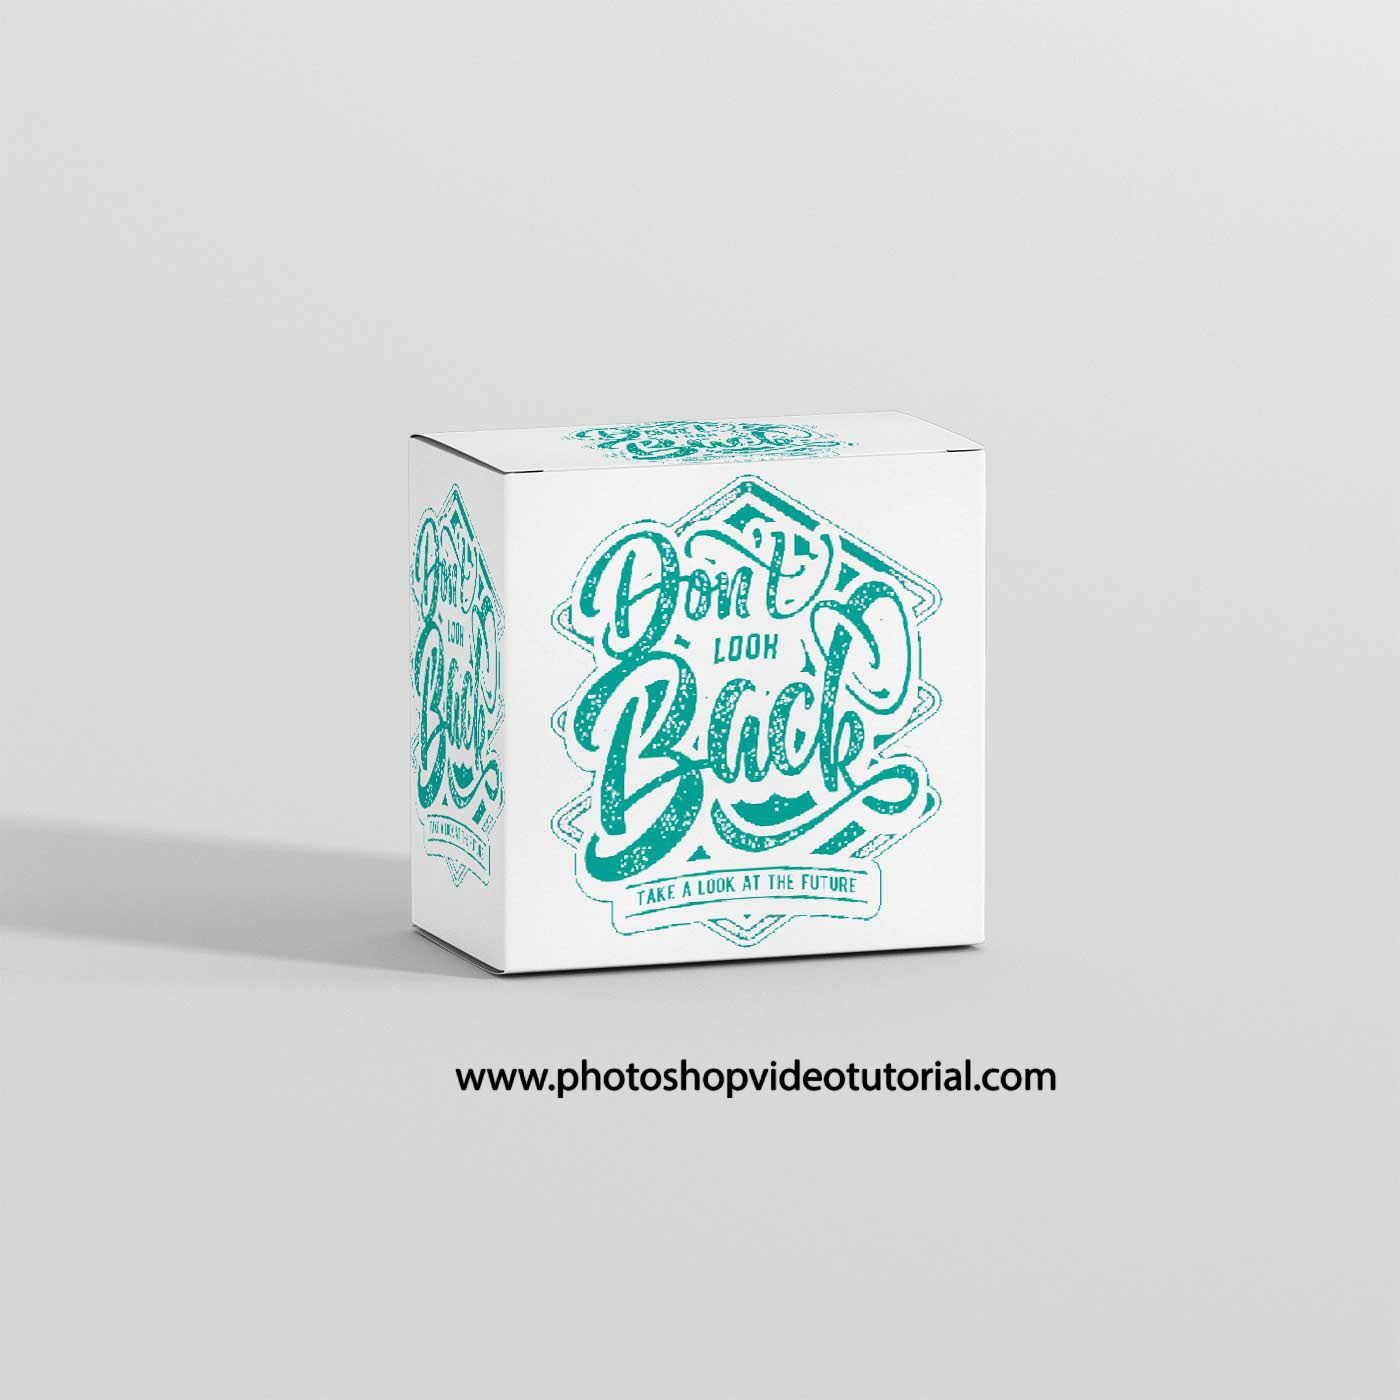 Download Free Download Box Mockups Psd Boxmockups Branding Download Downloadpsd Free Freemockup Freepsd Freebie Mo Mockup Free Psd Box Mockup Free Logo Mockup